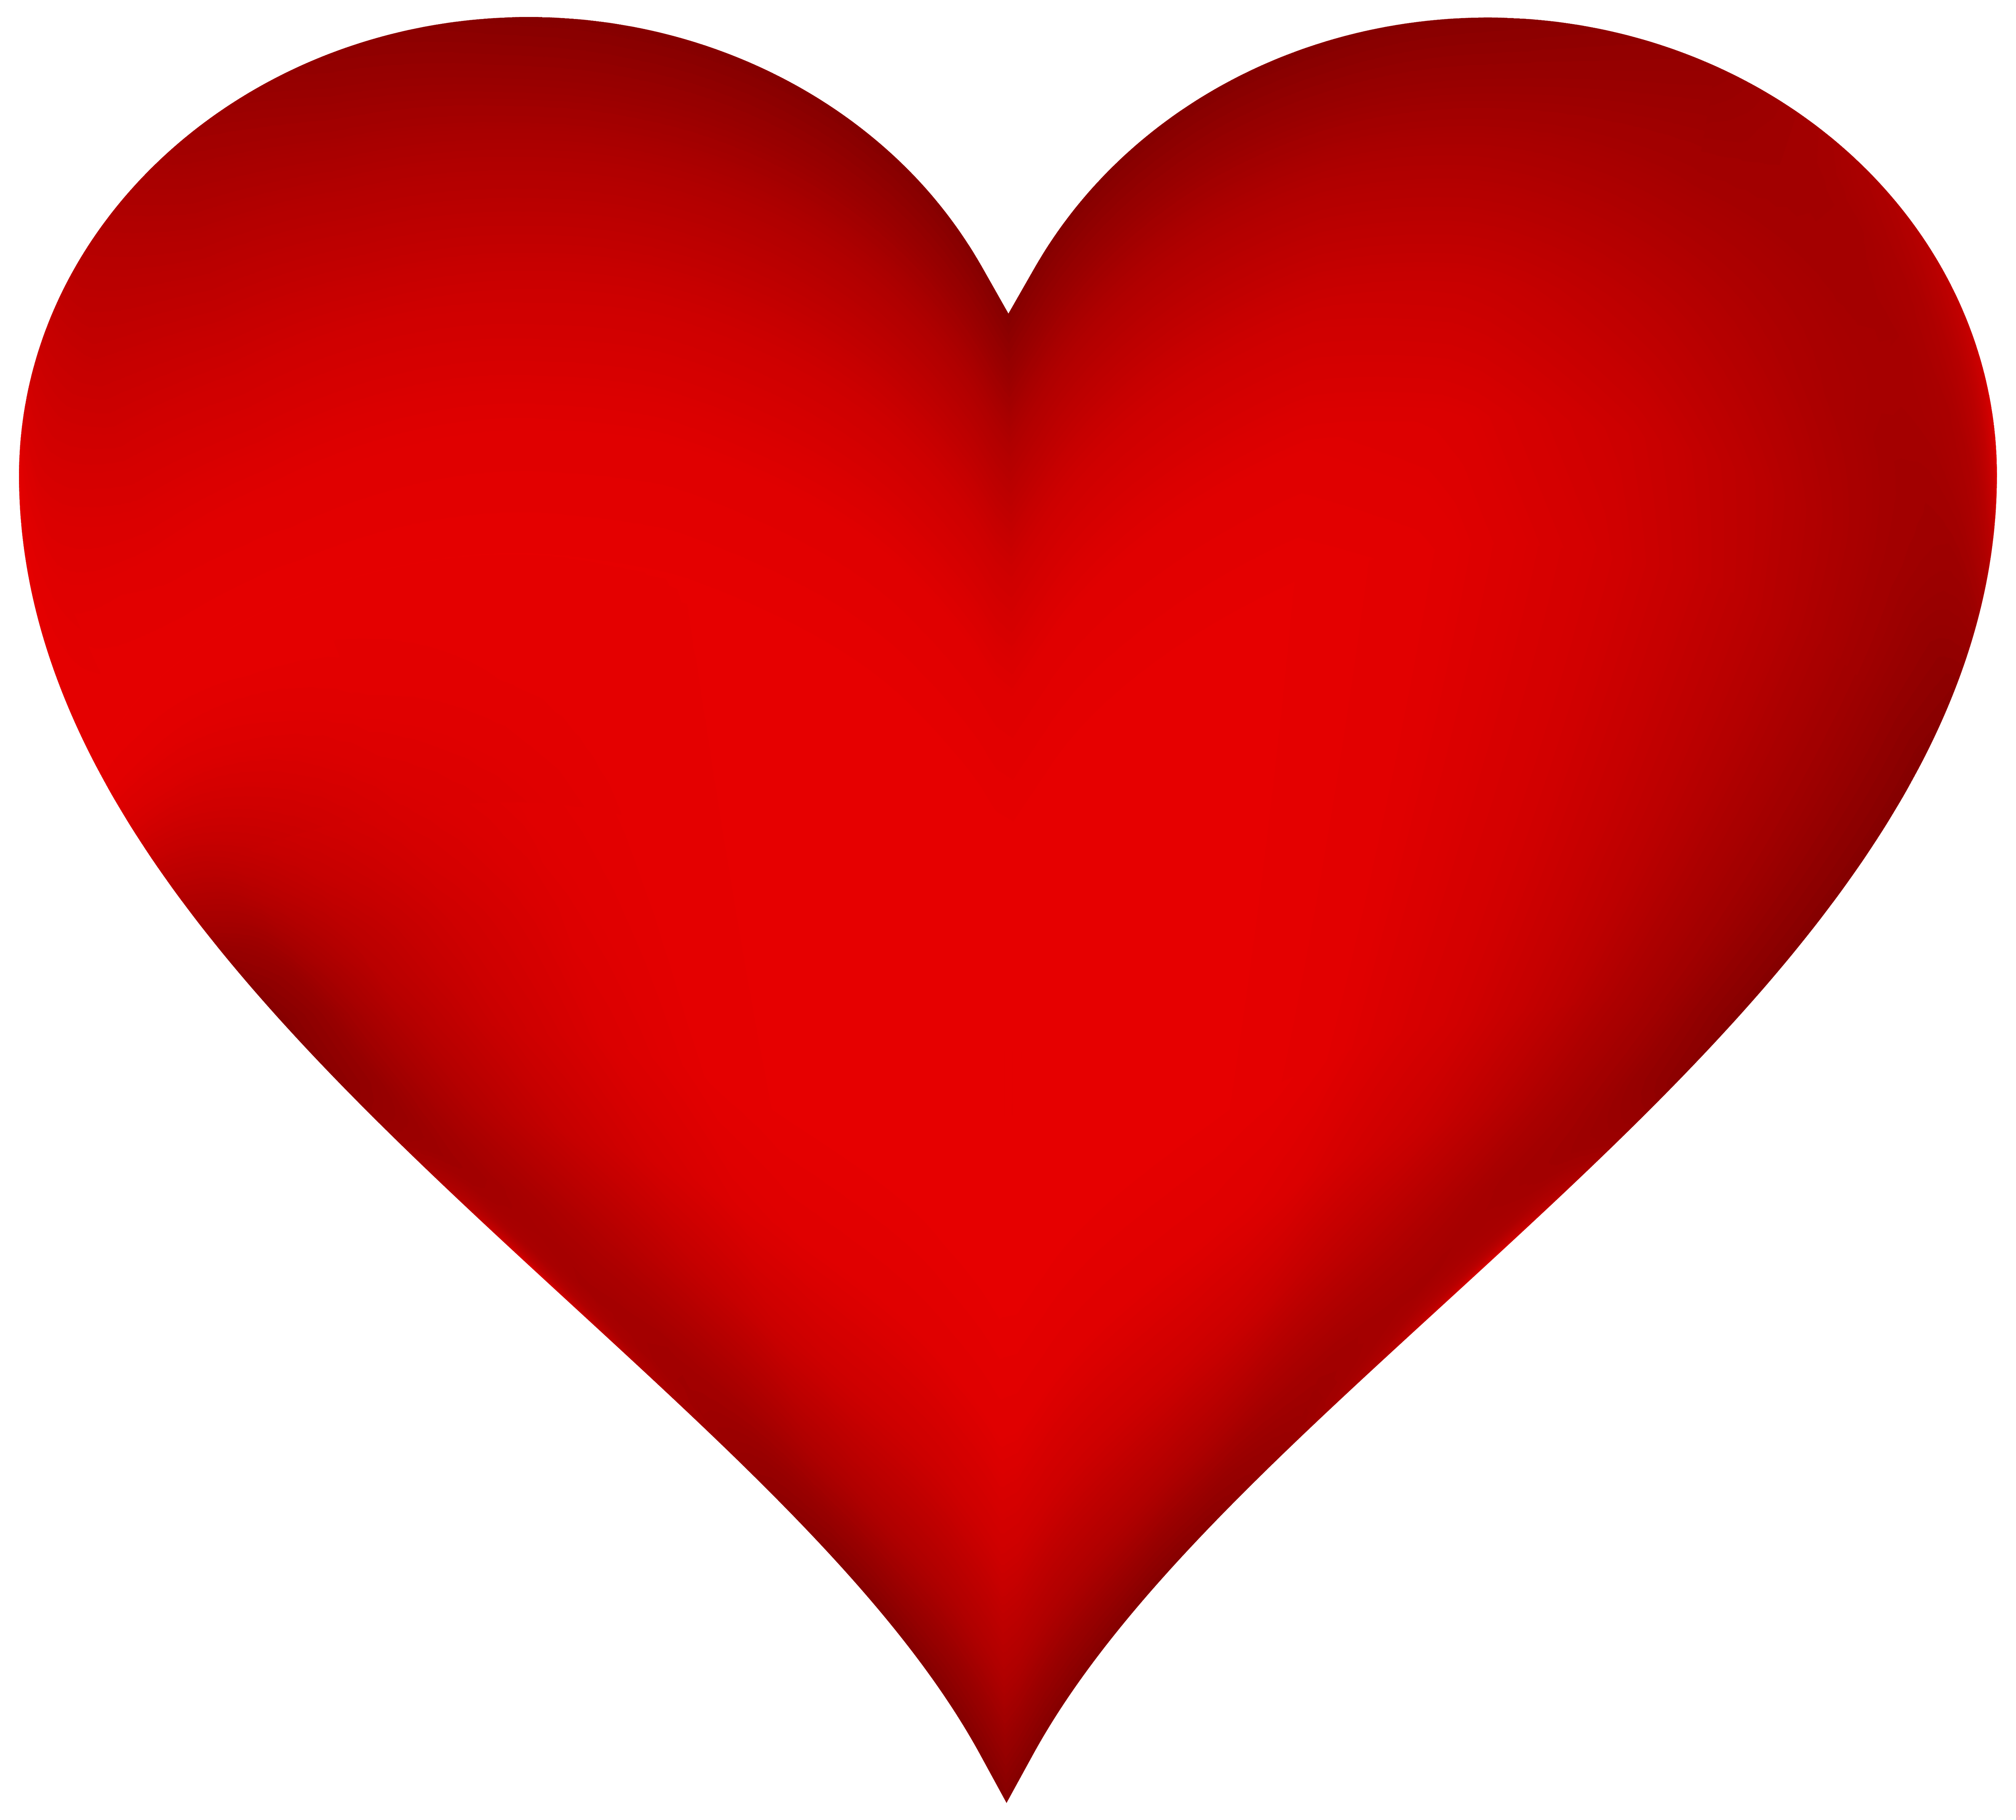 Royalty free heart clipart picture free library 28+ Collection of Heart Clipart Free Png | High quality, free ... picture free library